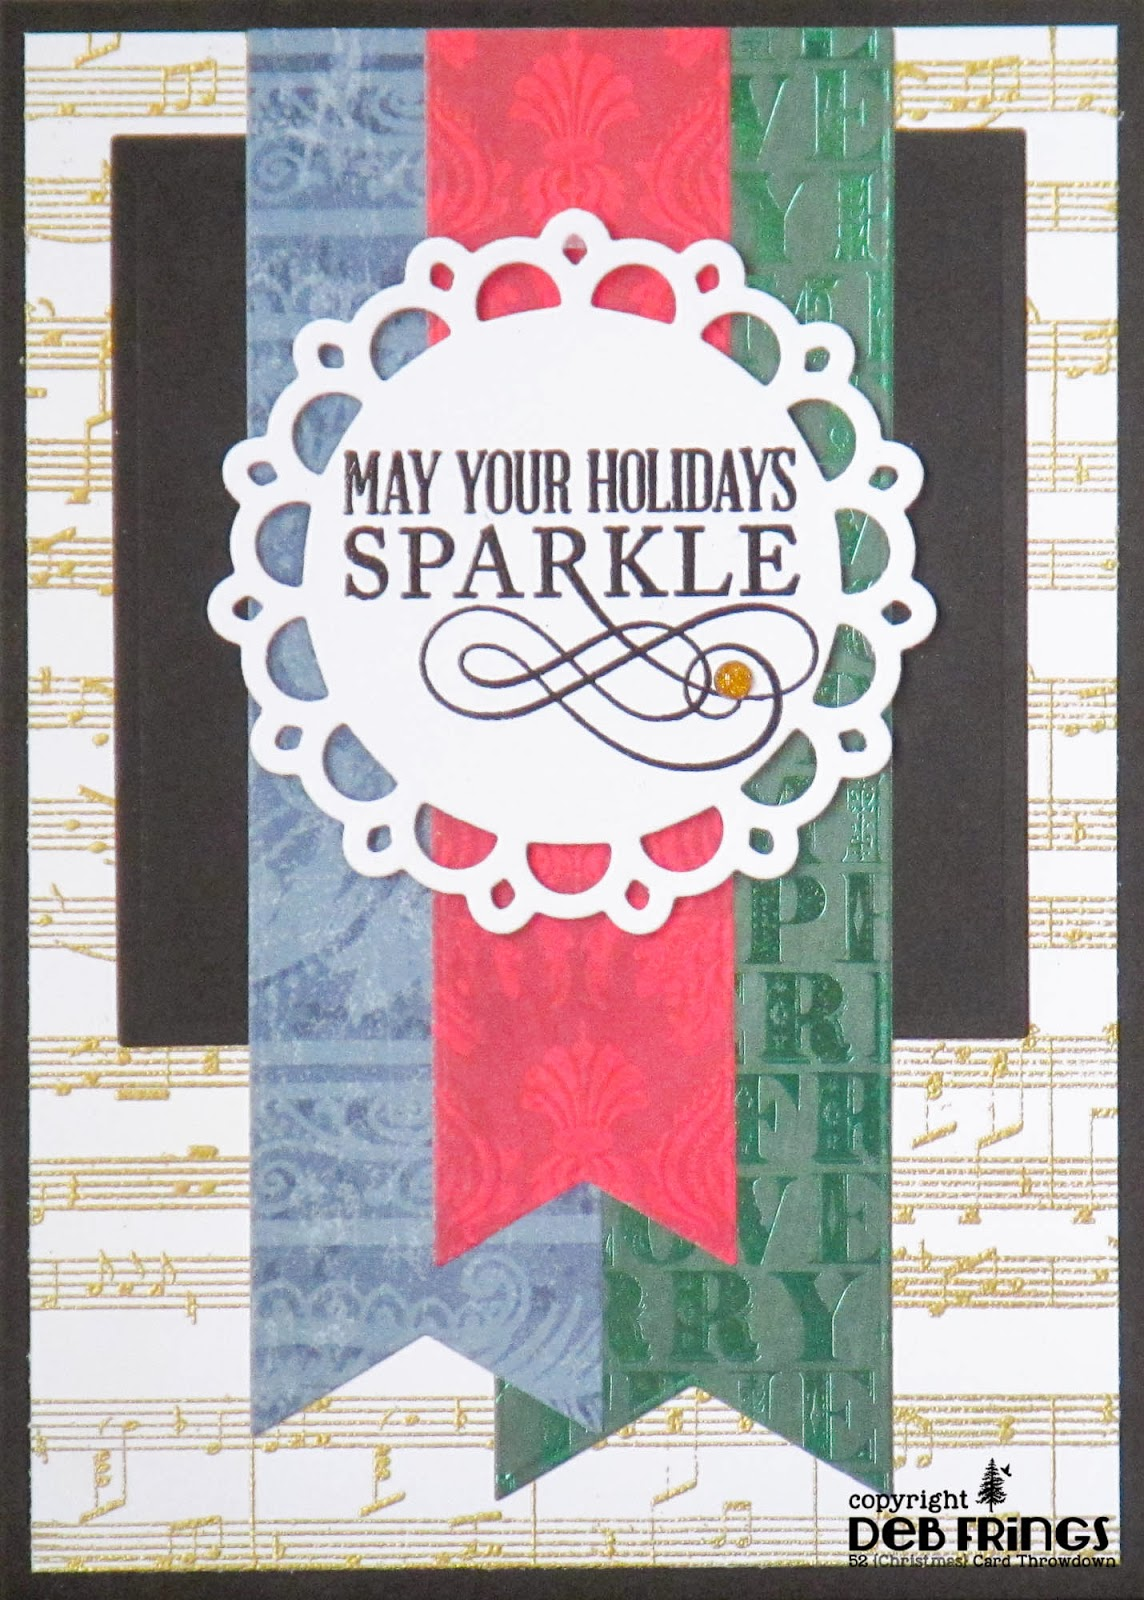 May Your Holidays Sparkle - photo by Deborah Frings - Deborah's Gems